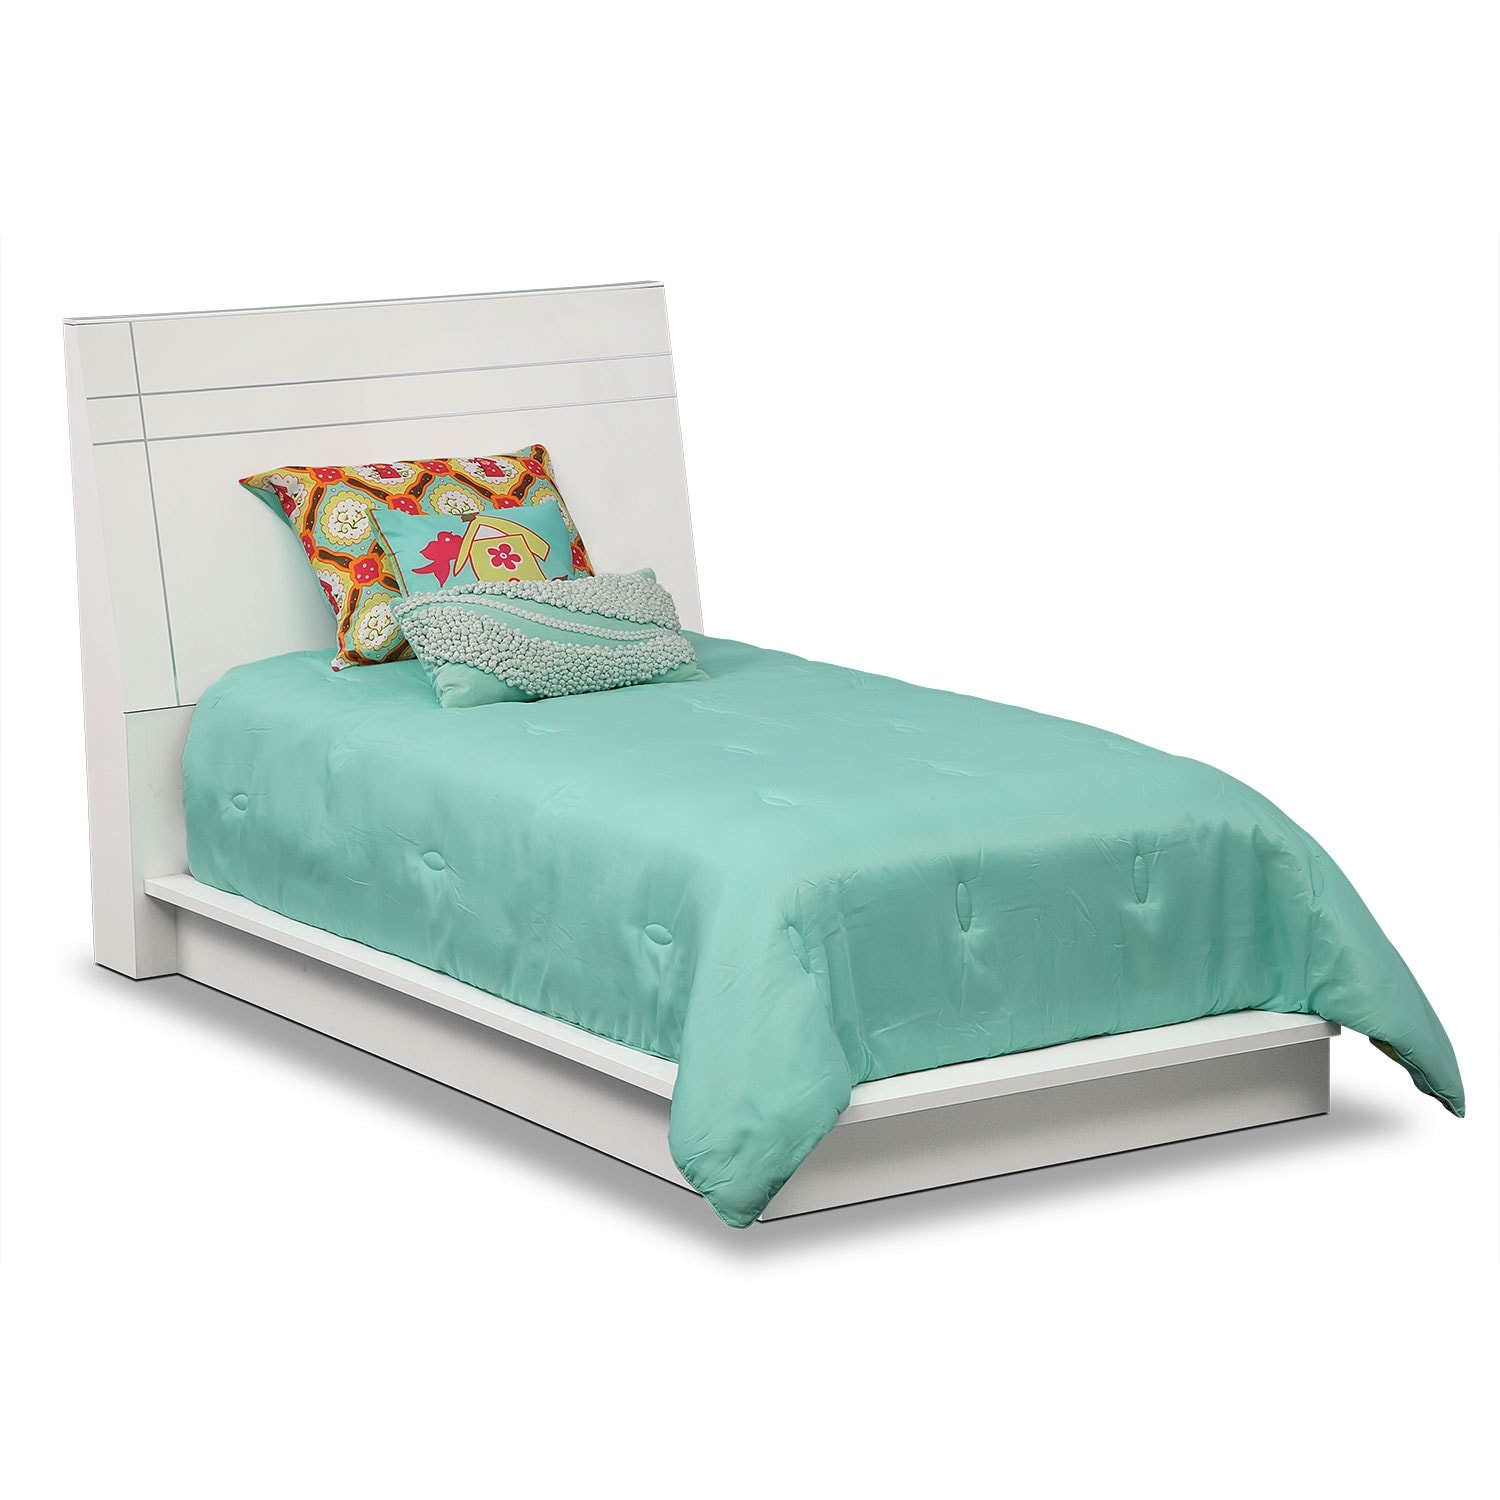 Dimora Twin Panel Bed - White